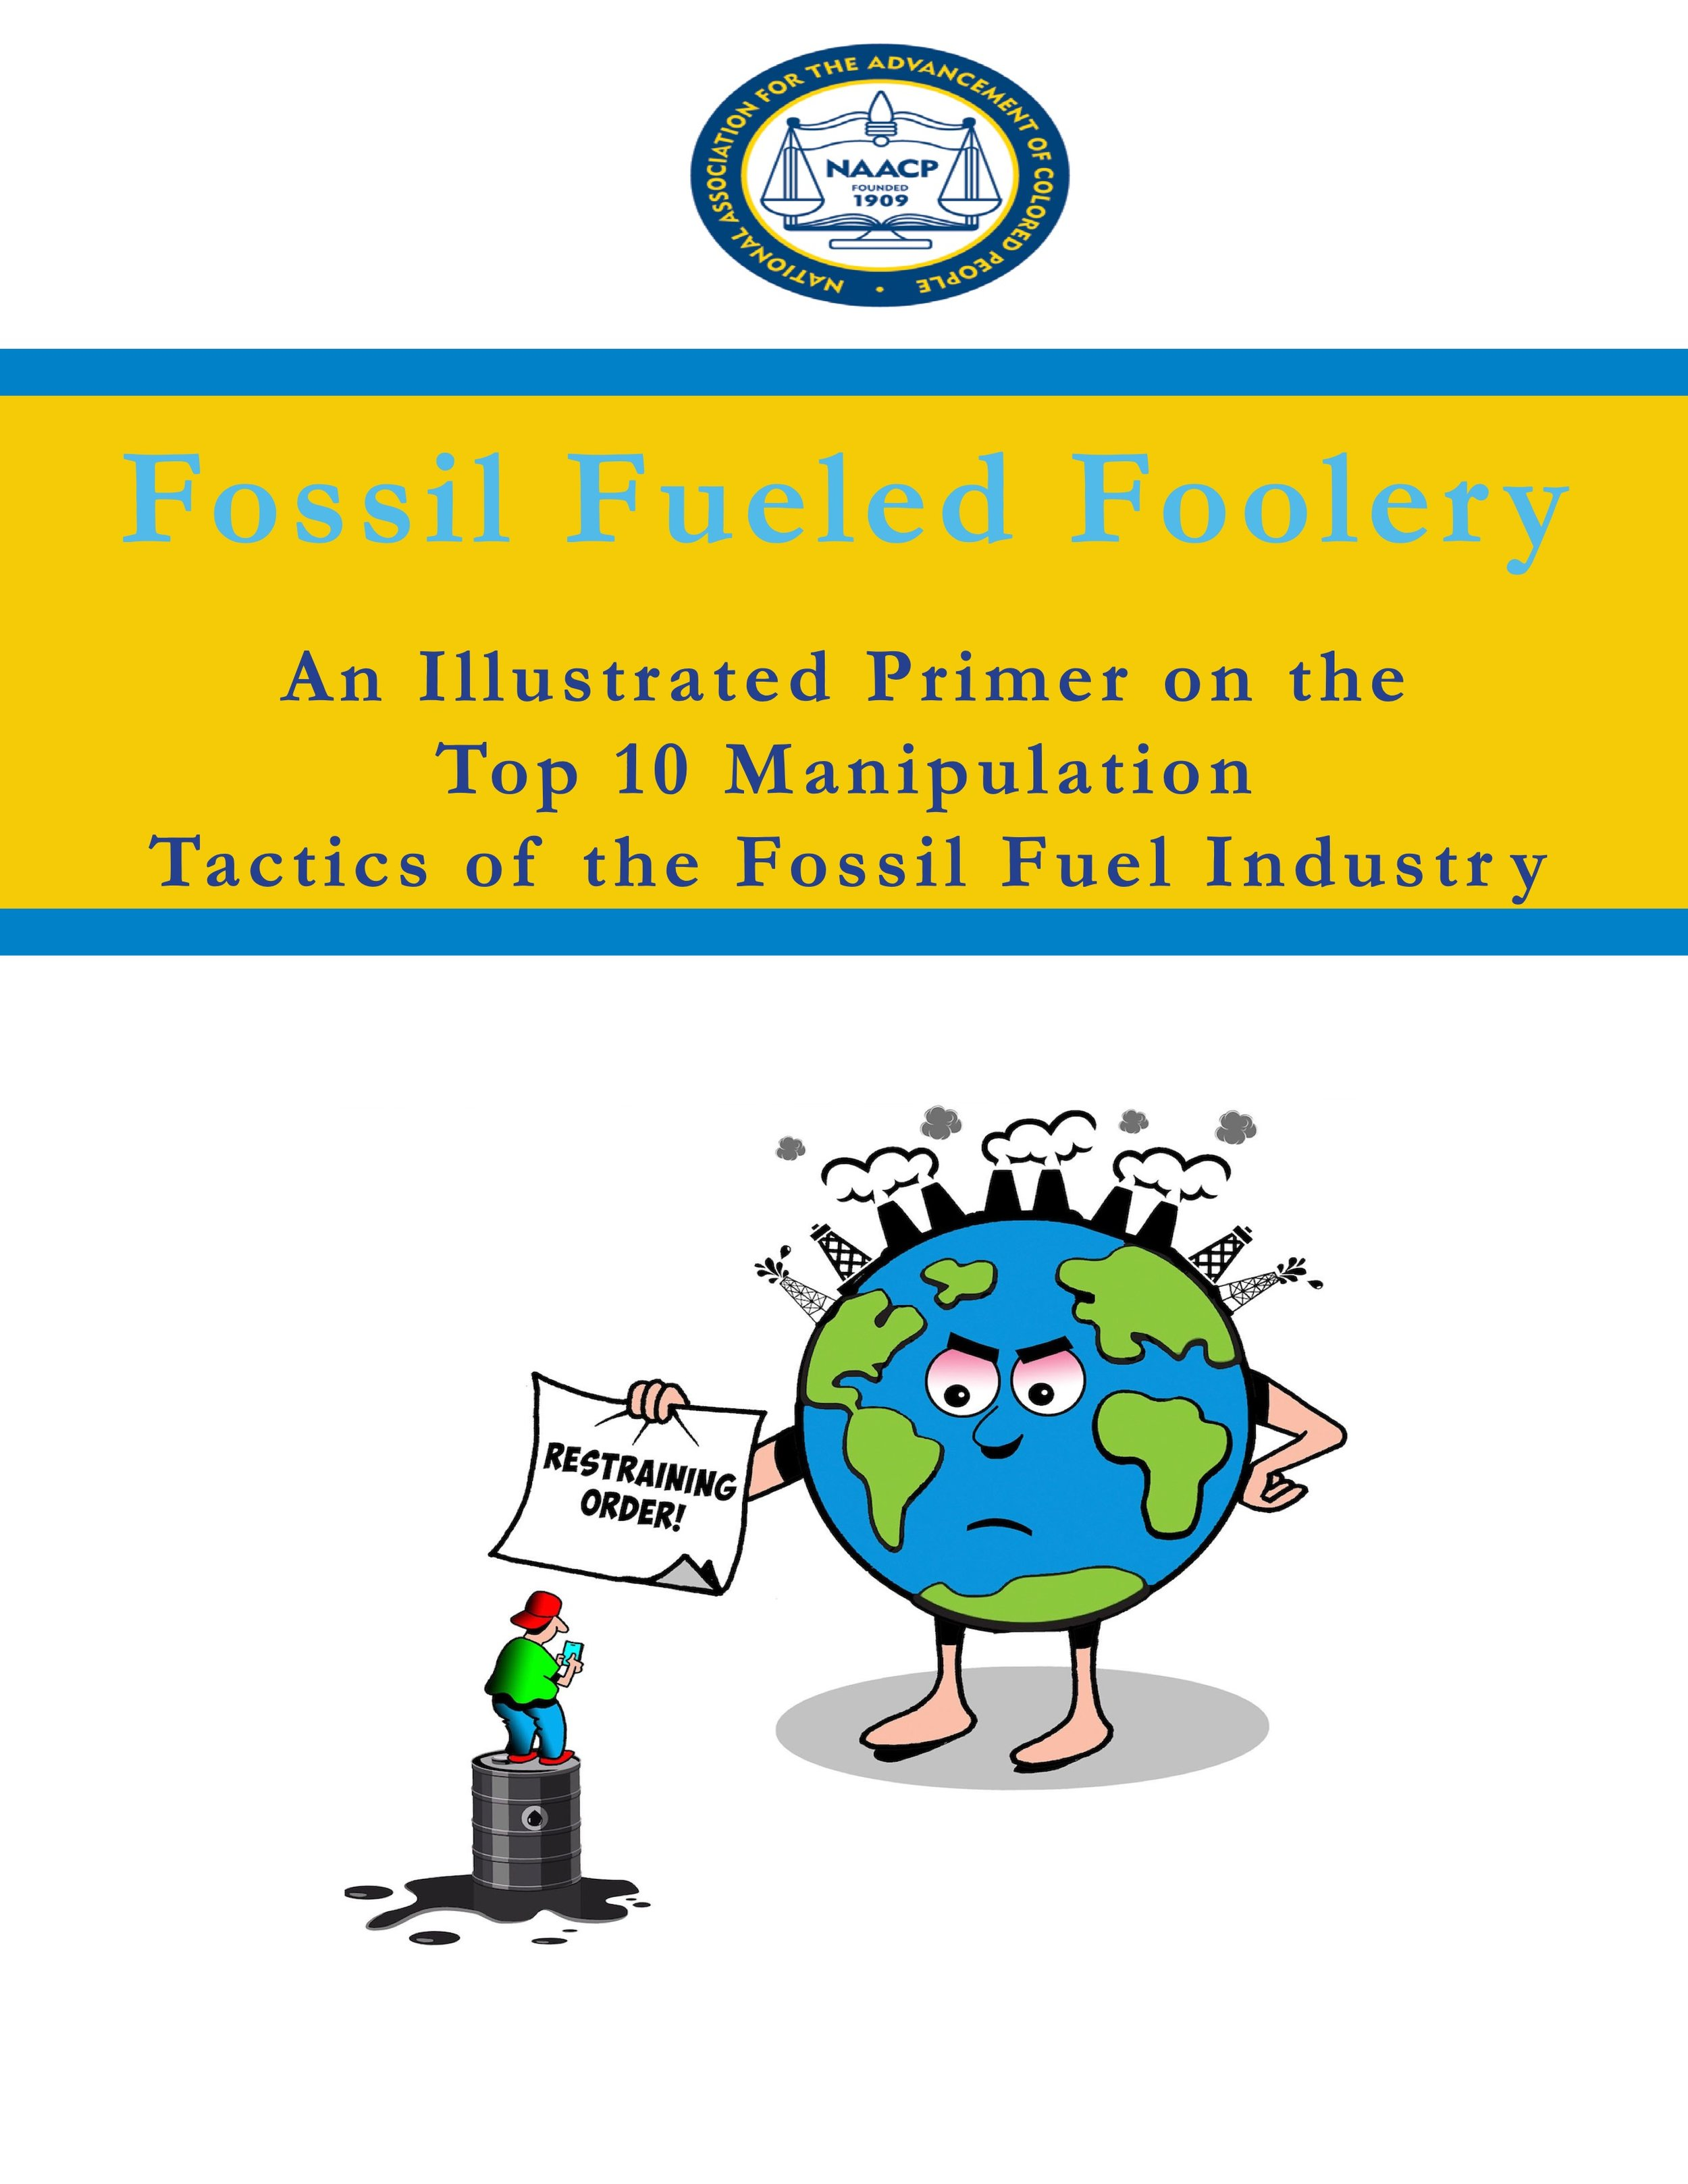 Fossil-Fueled-Foolery-An-Illustrated-Primer-on-the-Top-10-Manipulation-Tactics-of-the-Fossil-Fuel-Industry.jpeg